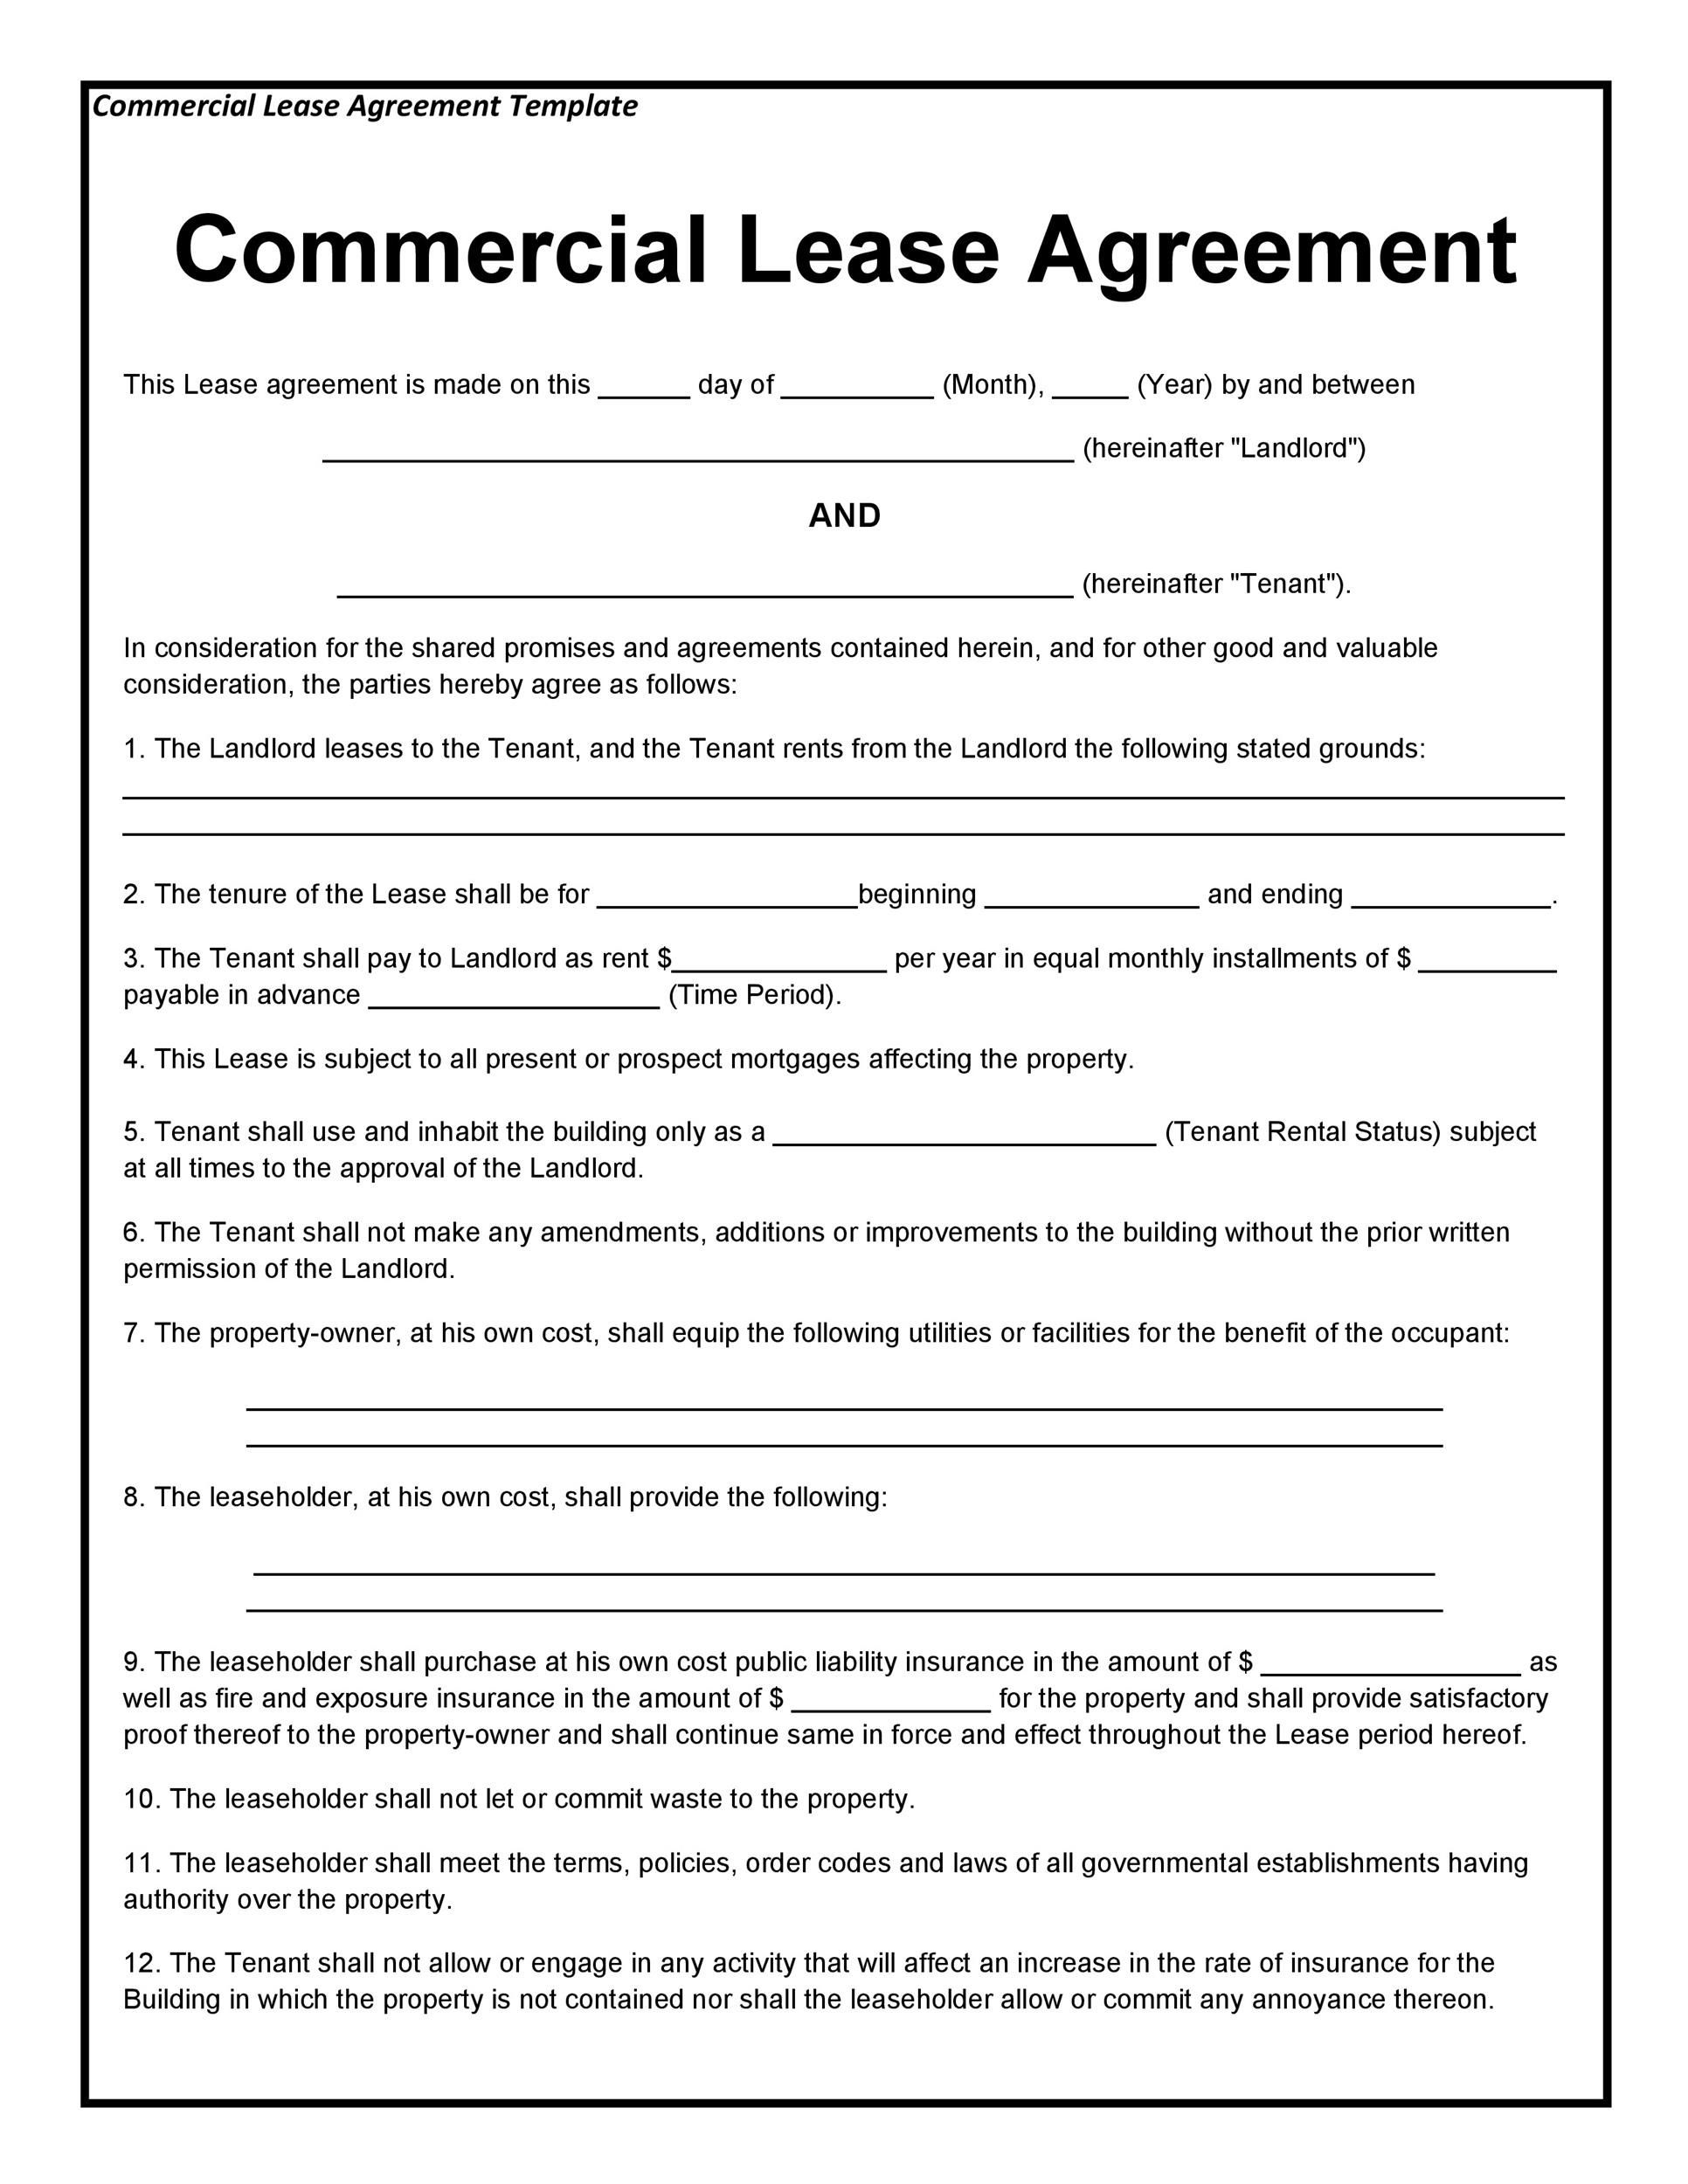 004 Best Template For Lease Agreement Free Photo  Printable Room Rental Commercial Uk FloridaFull